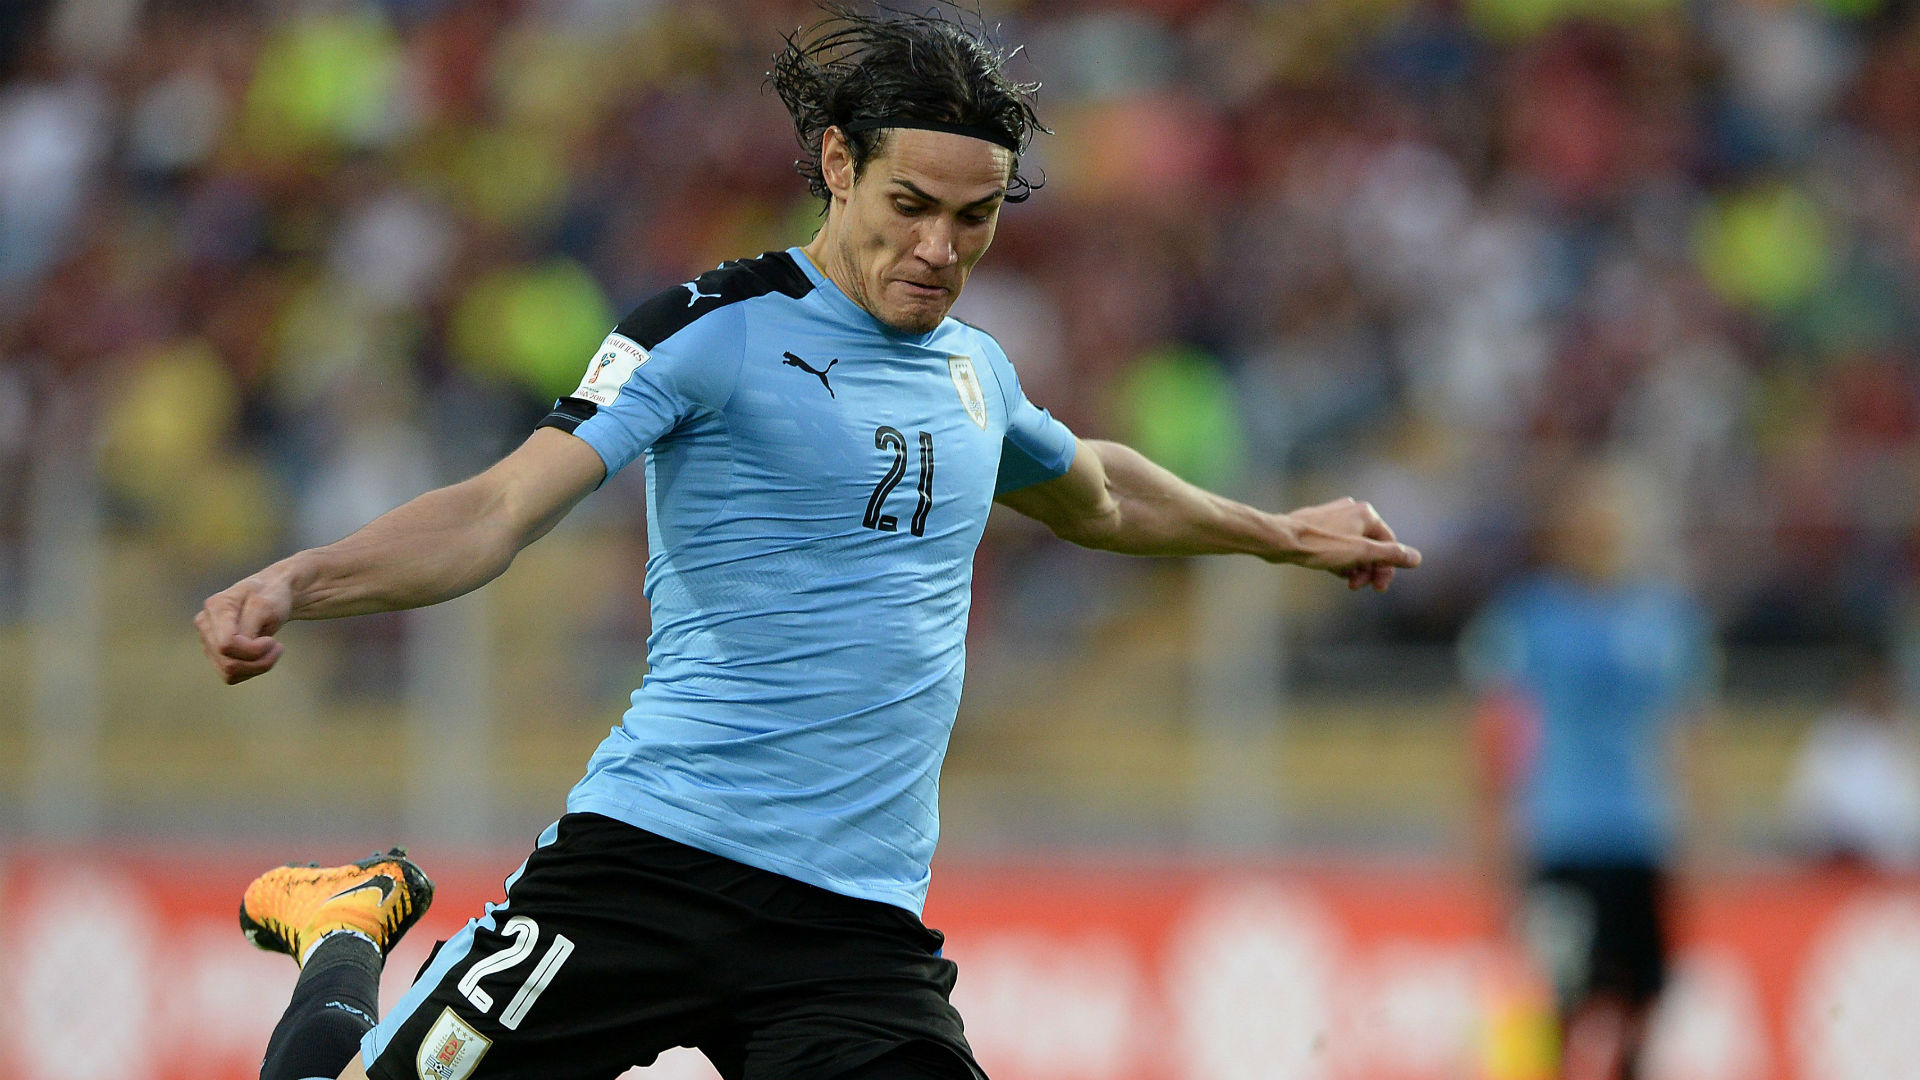 Edinson Cavani Uruguay Venezuela World Cup qualifying